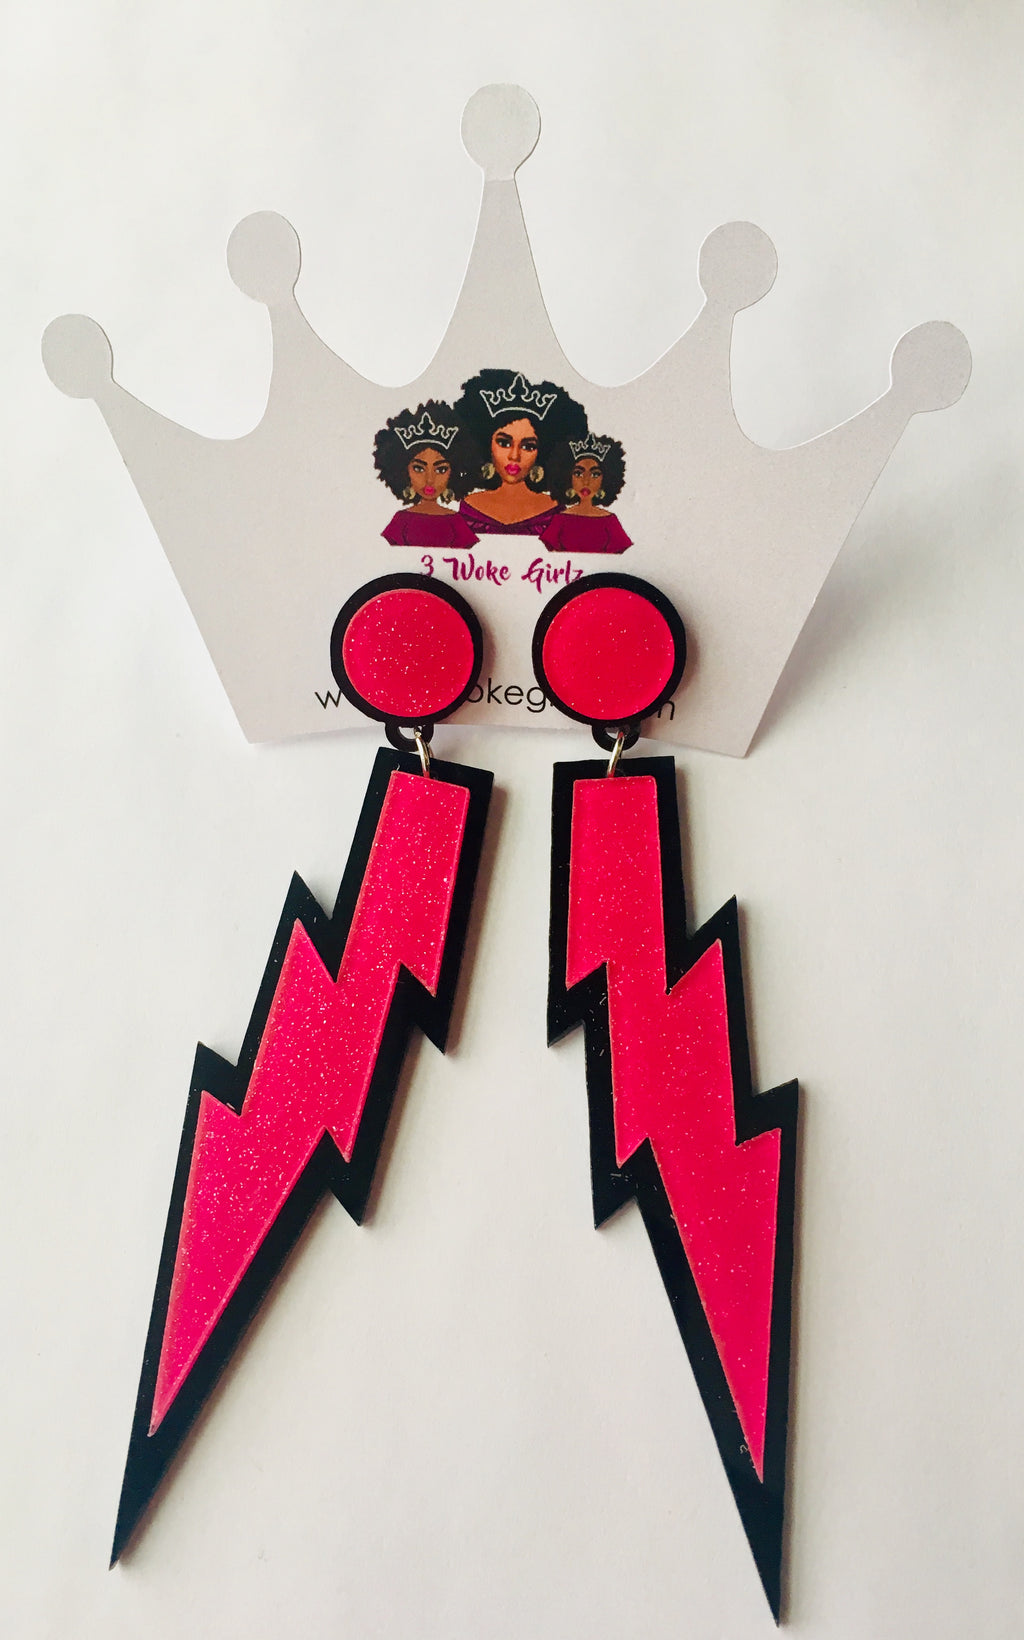 Fun Lightning Bolt Earrings! - 3 Woke Girlz